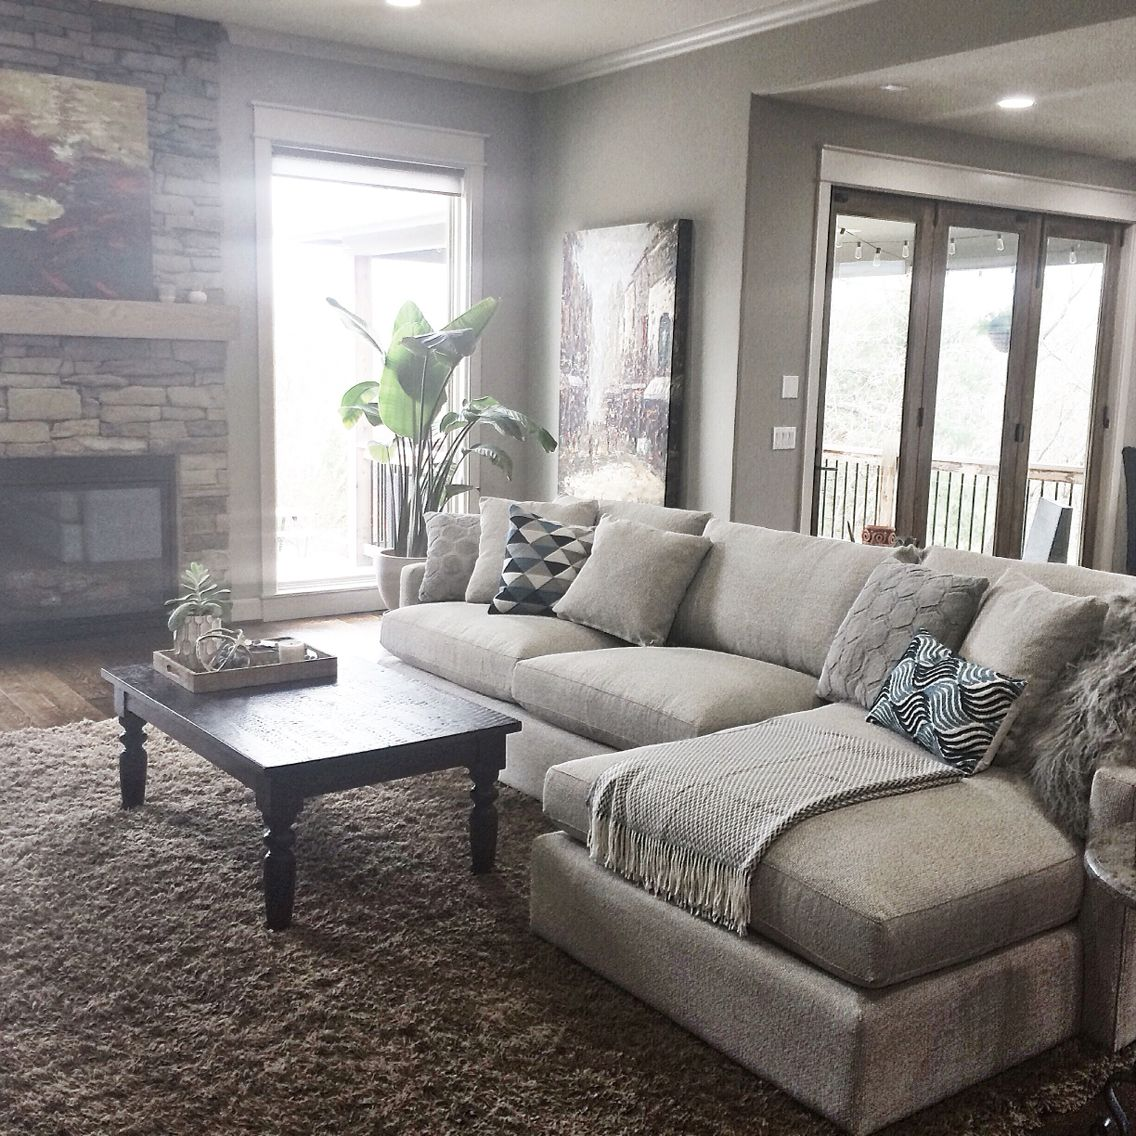 Pottery Barn Living Room With Carpet And Decorative Plant